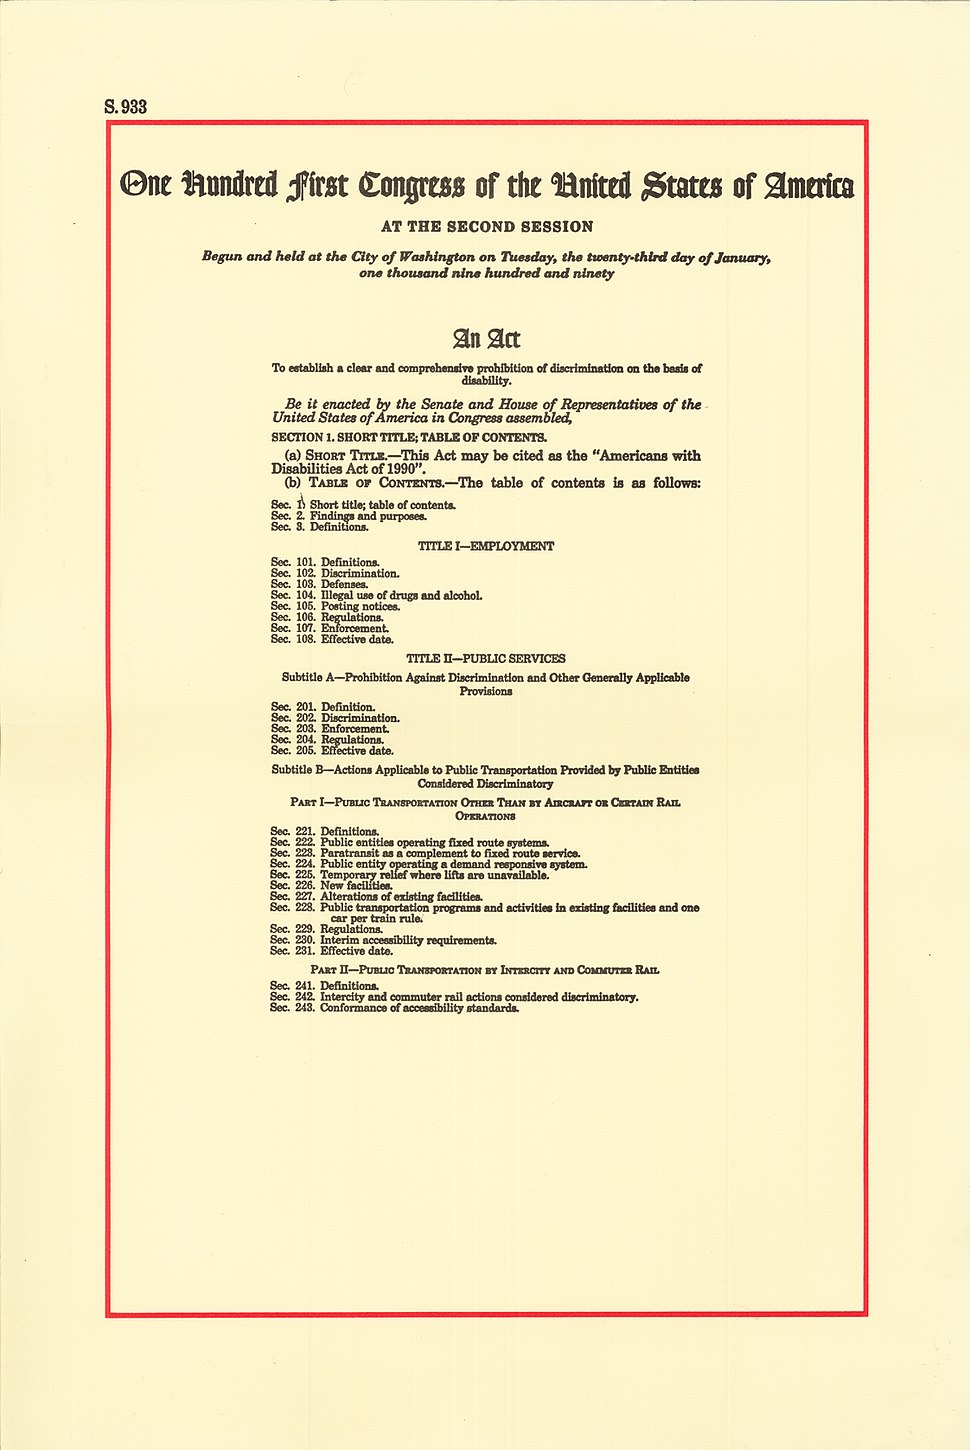 Americans with Disabilities Act of 1990, page 1